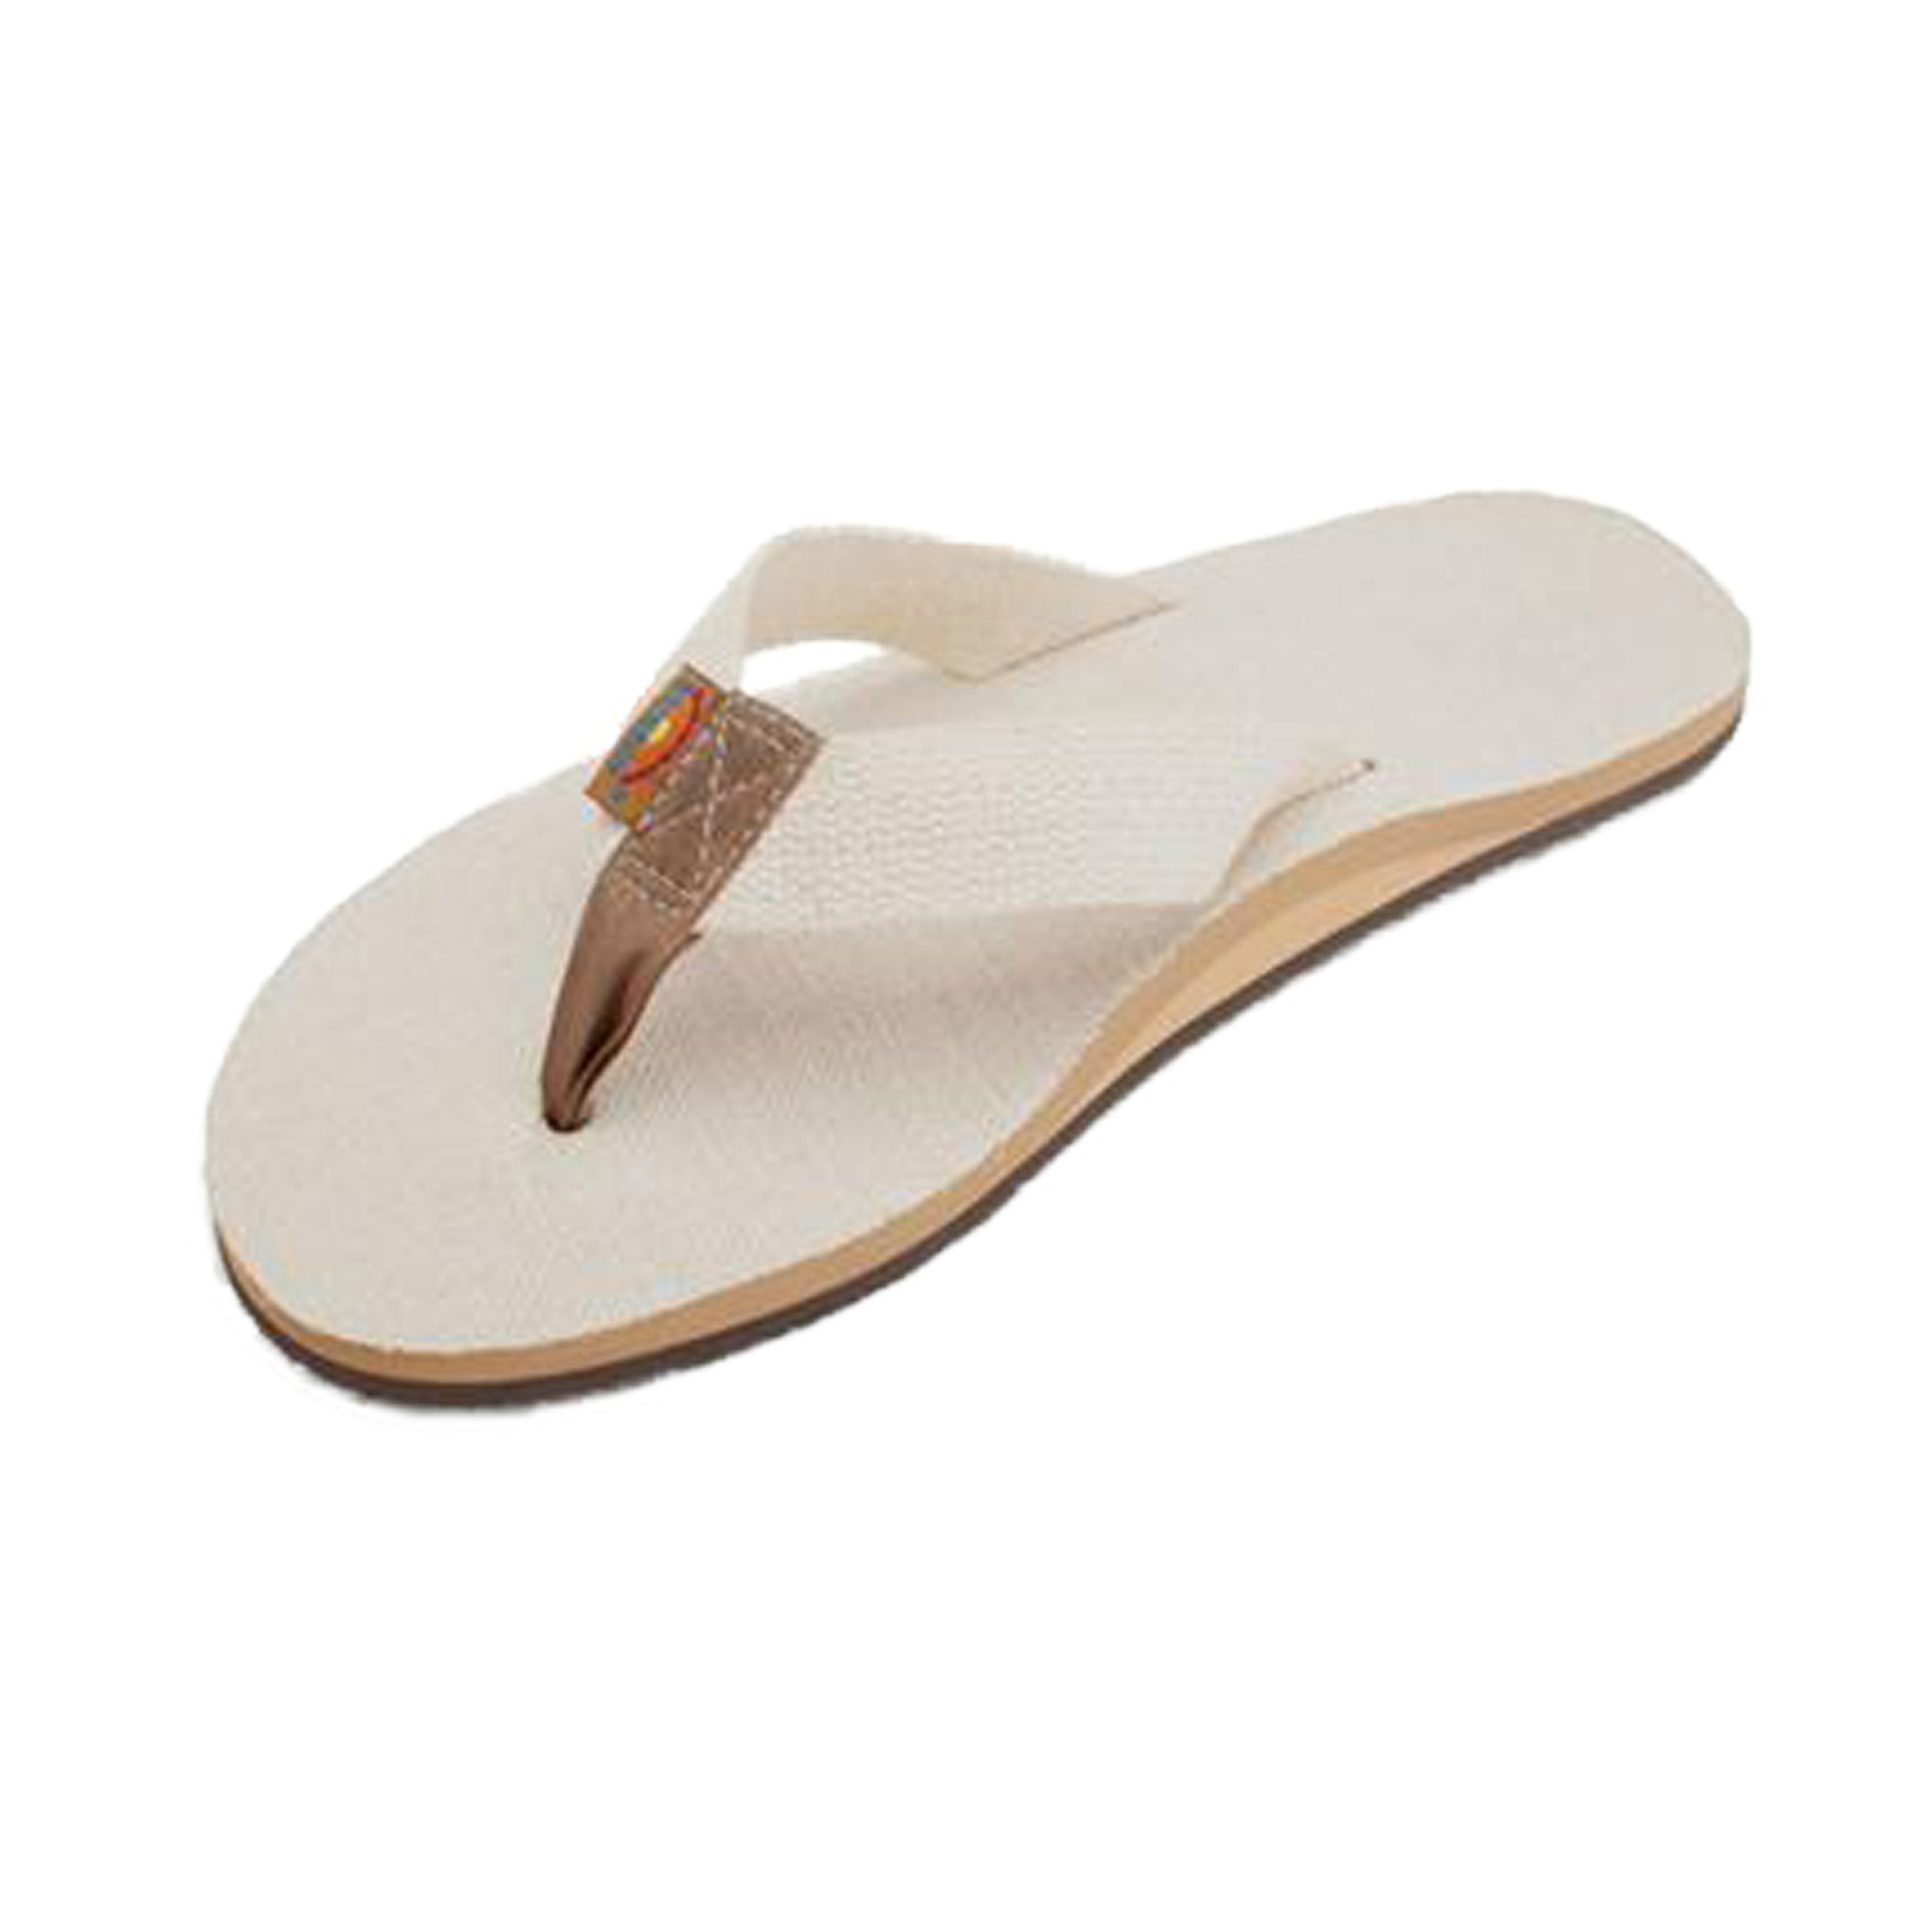 Rainbow Hemp Single Women's Sandal